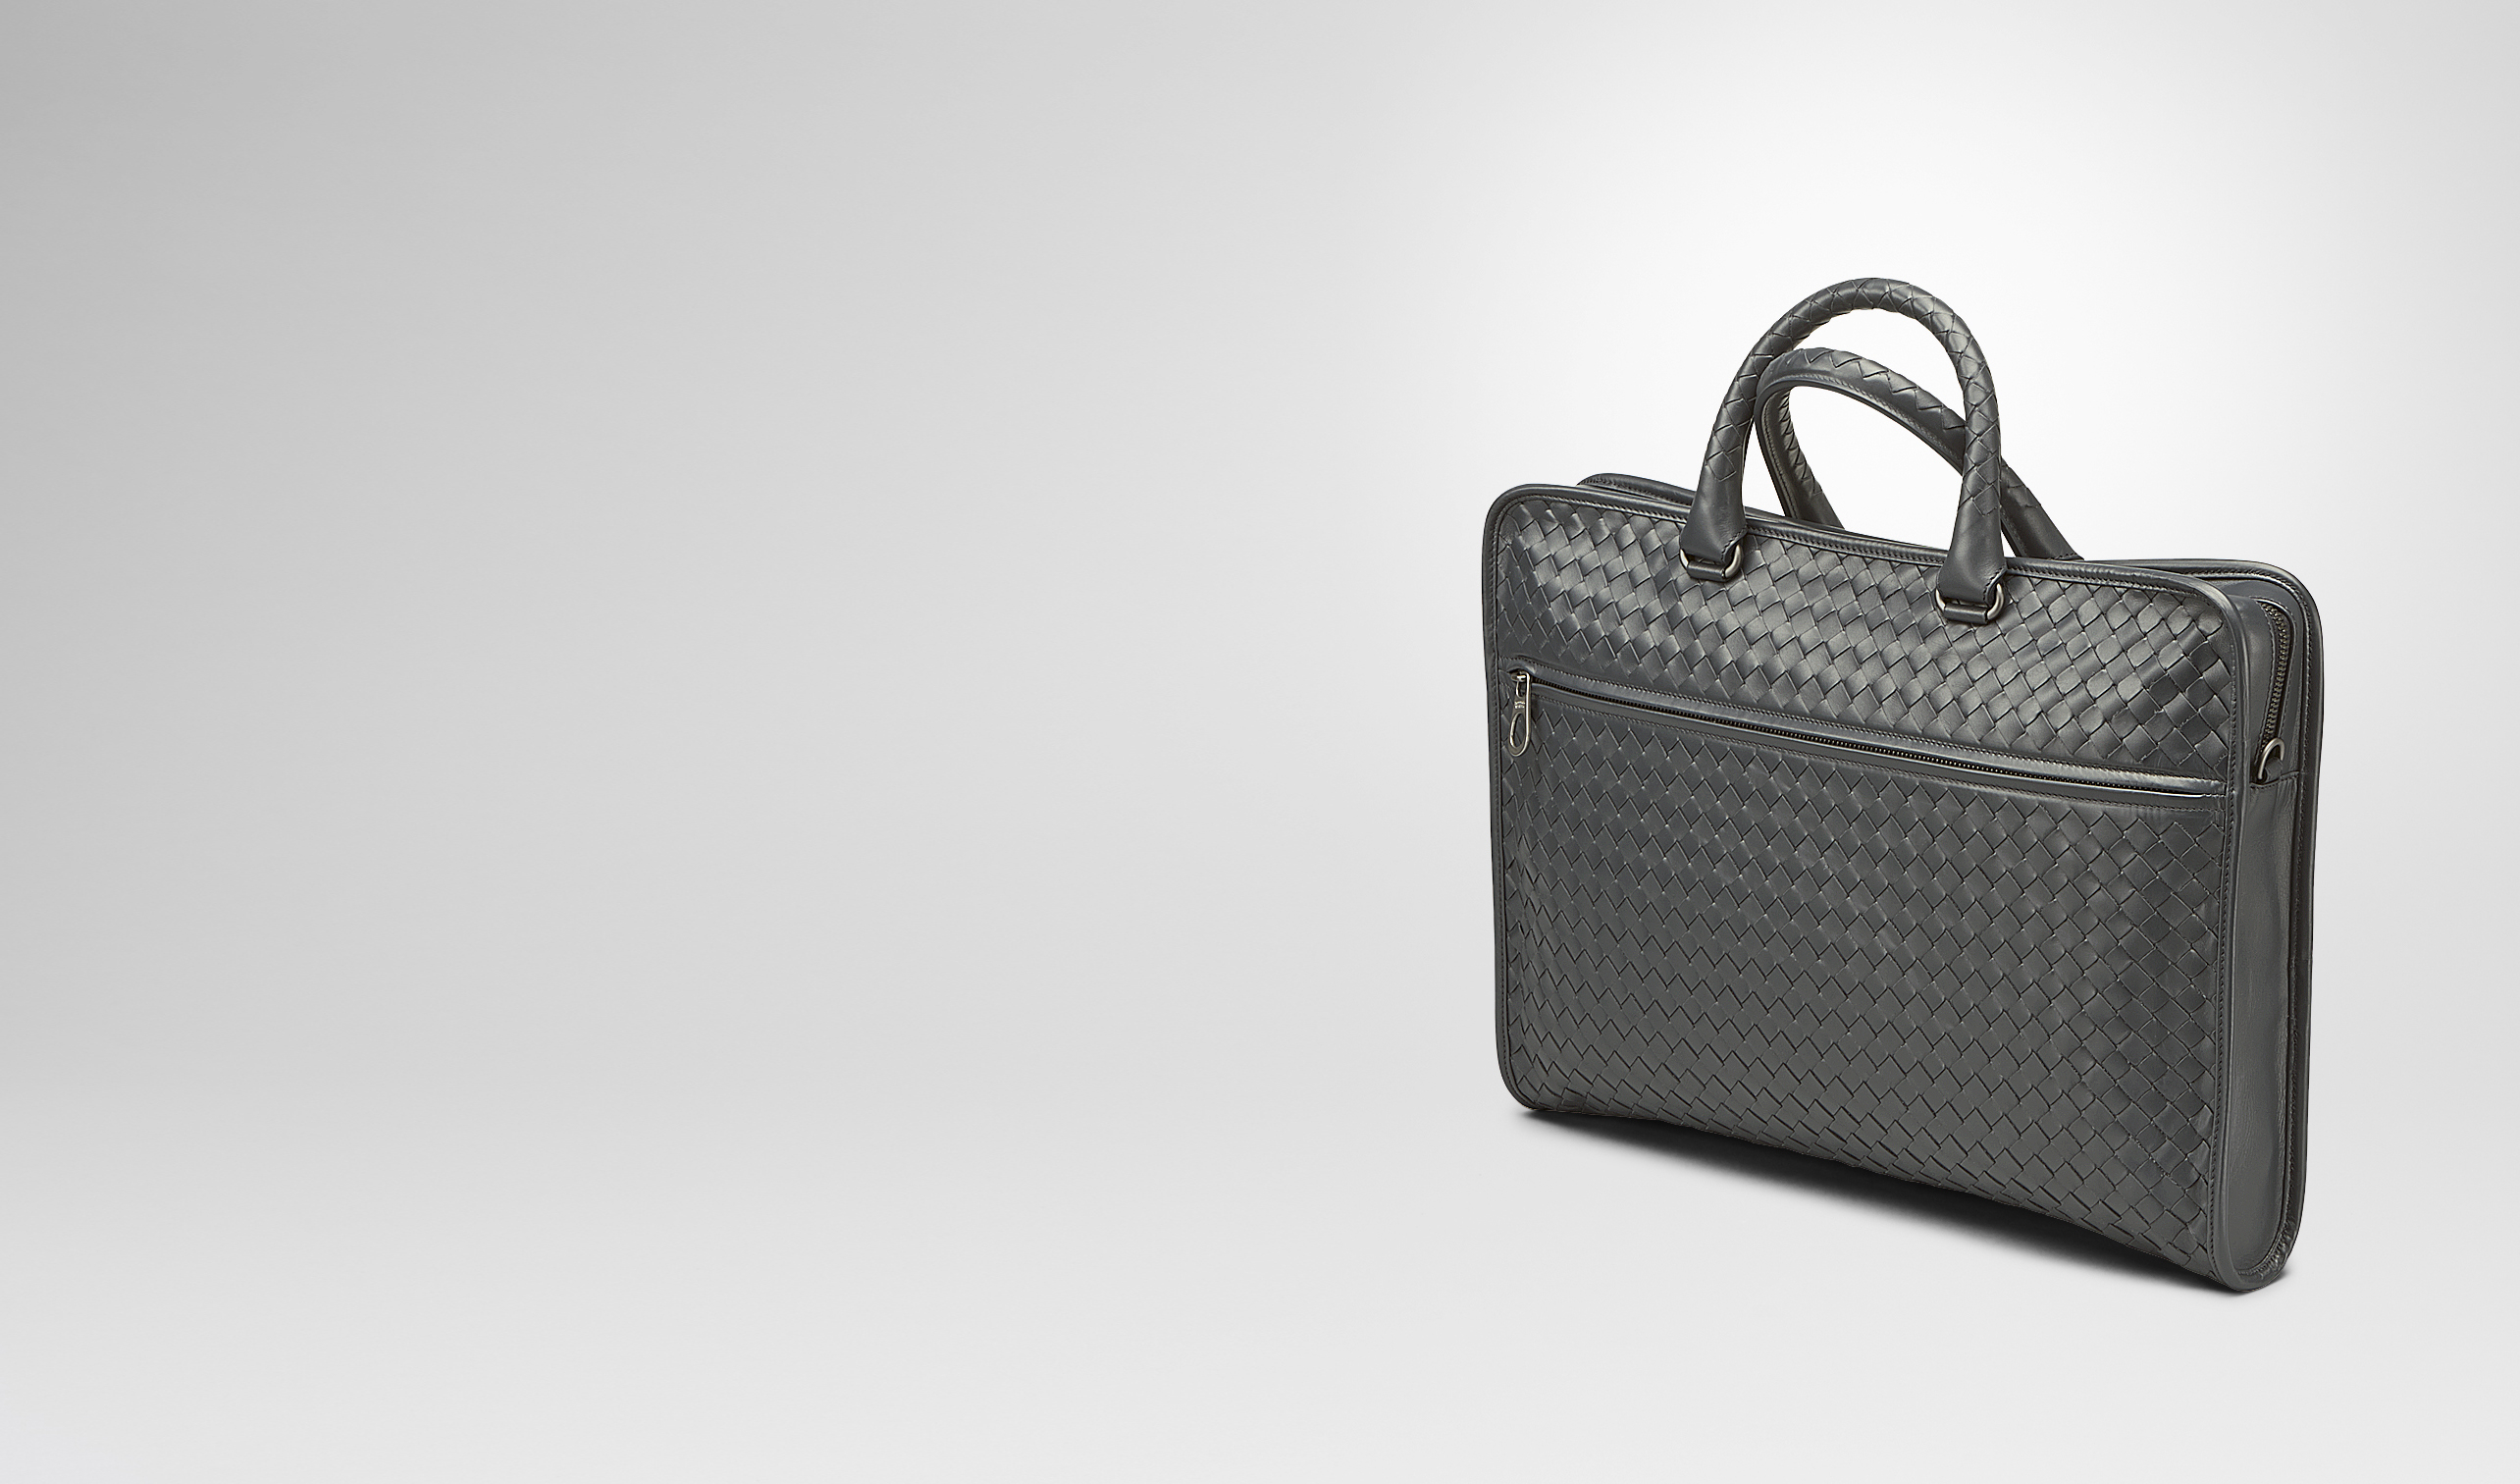 BOTTEGA VENETA Business Tasche U AKTENTASCHE AUS INTRECCIATO KALBSLEDER IN NEW LIGHT GREY pl